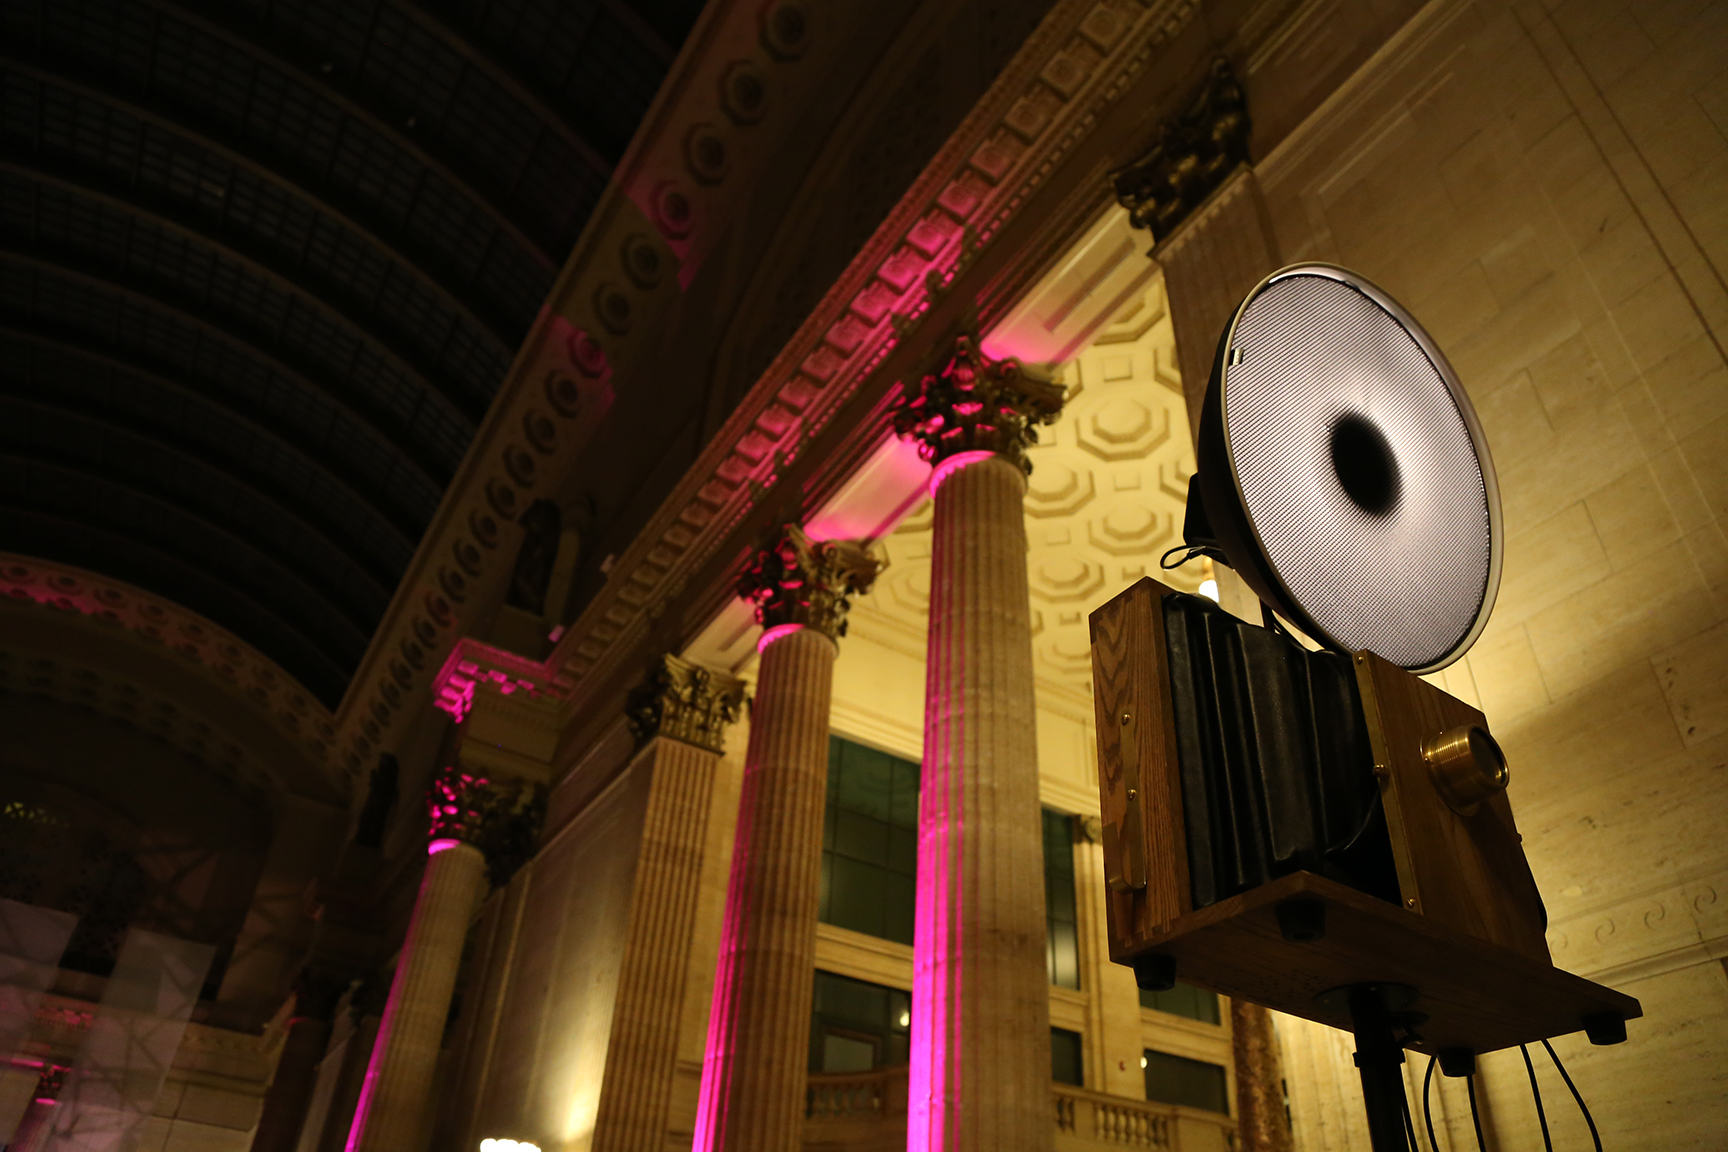 Frost did an amazing job with lighting the interior space in the Great Hall. Just look at the columns!